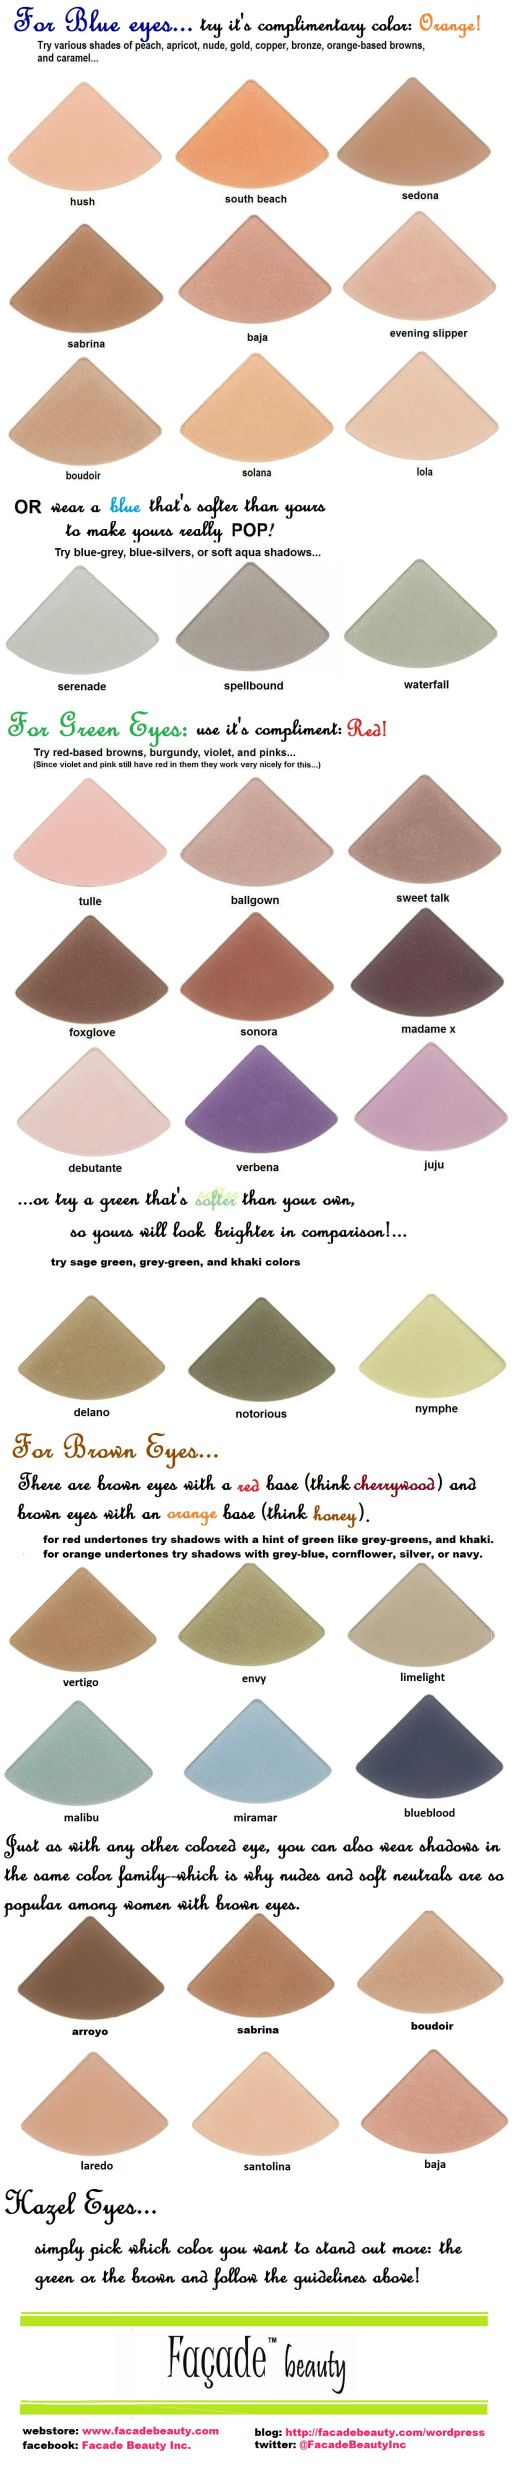 How to choose the best shadows to bring out your natural eye color!! don't just look at the graphic. read the article!